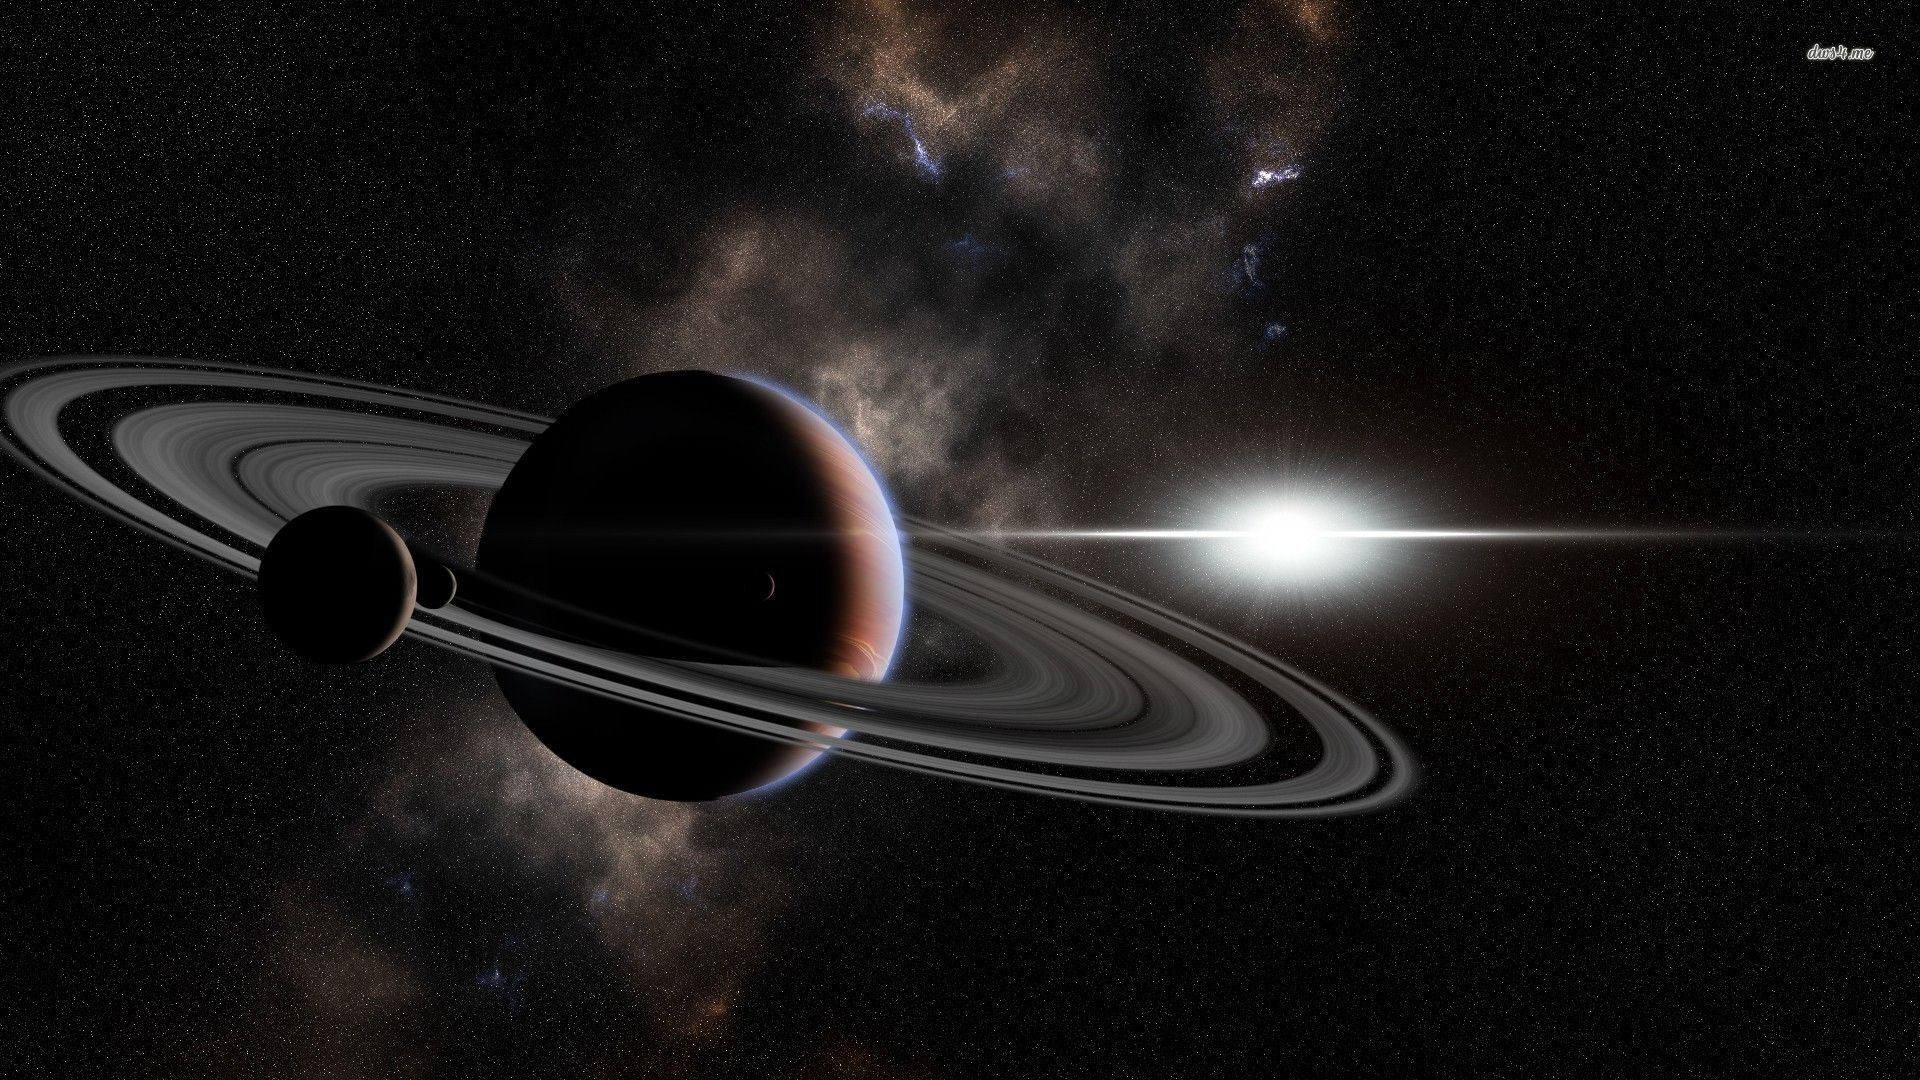 Saturn Pictures From Space | Saturn wallpaper 1280x800 ...